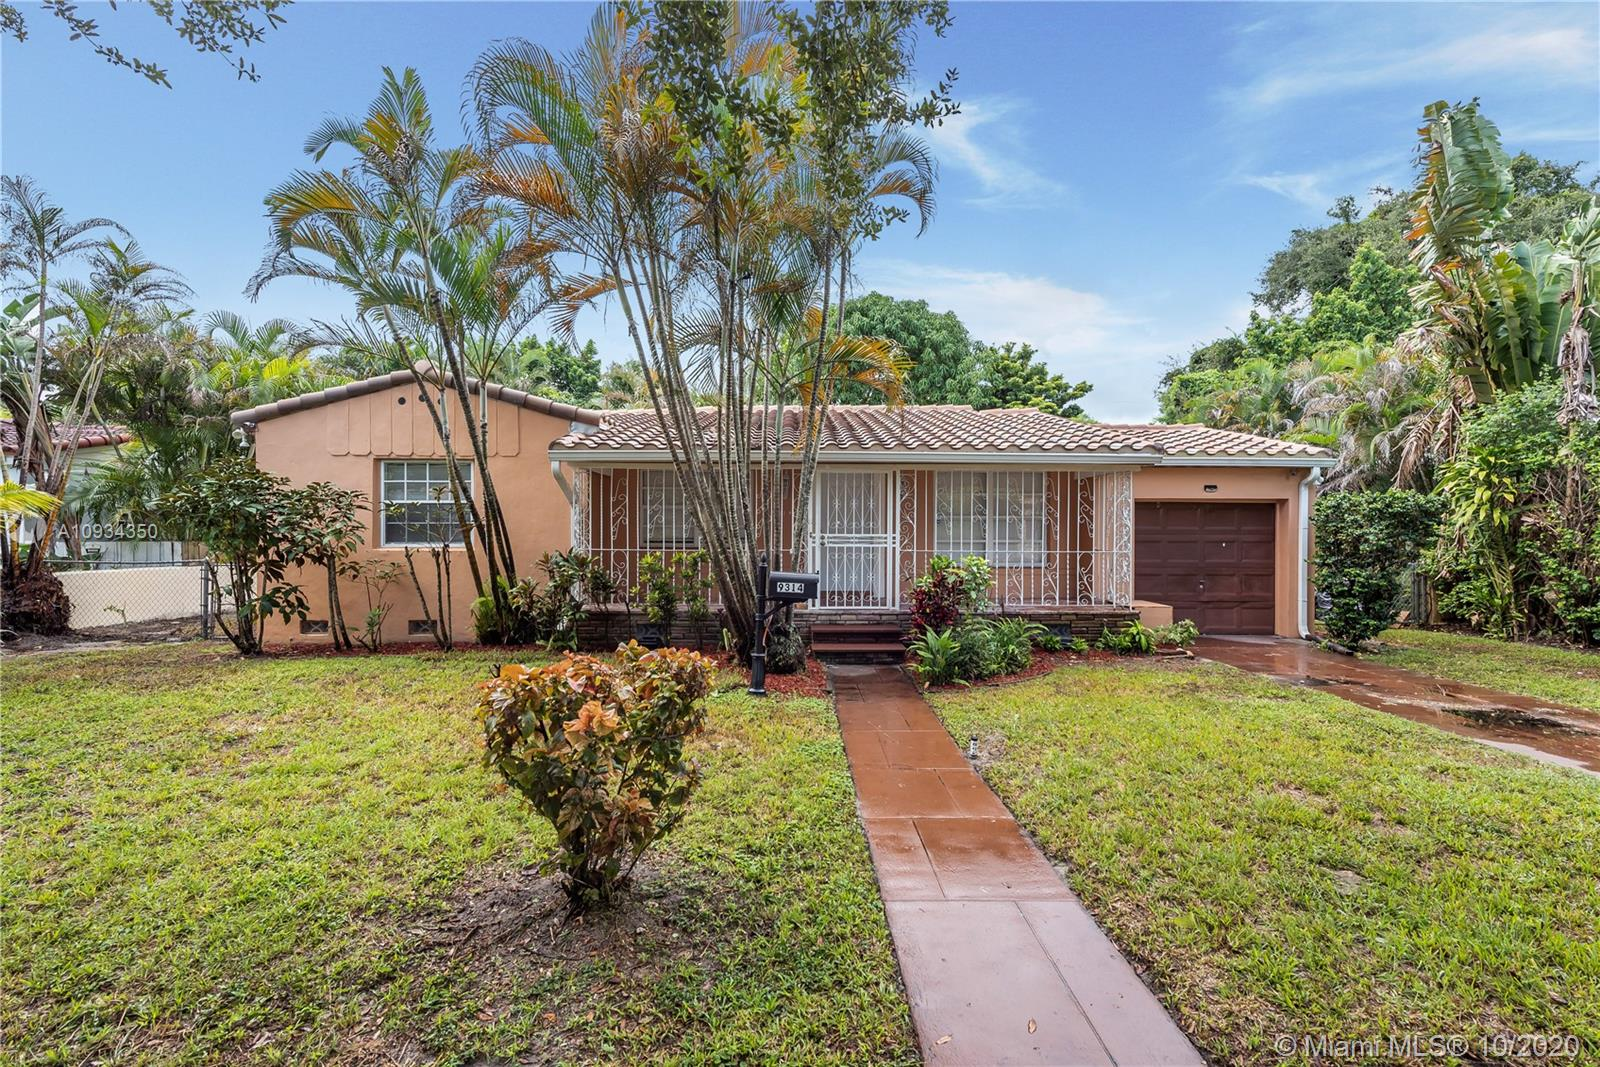 Details for 9314 2nd Ct, Miami Shores, FL 33150